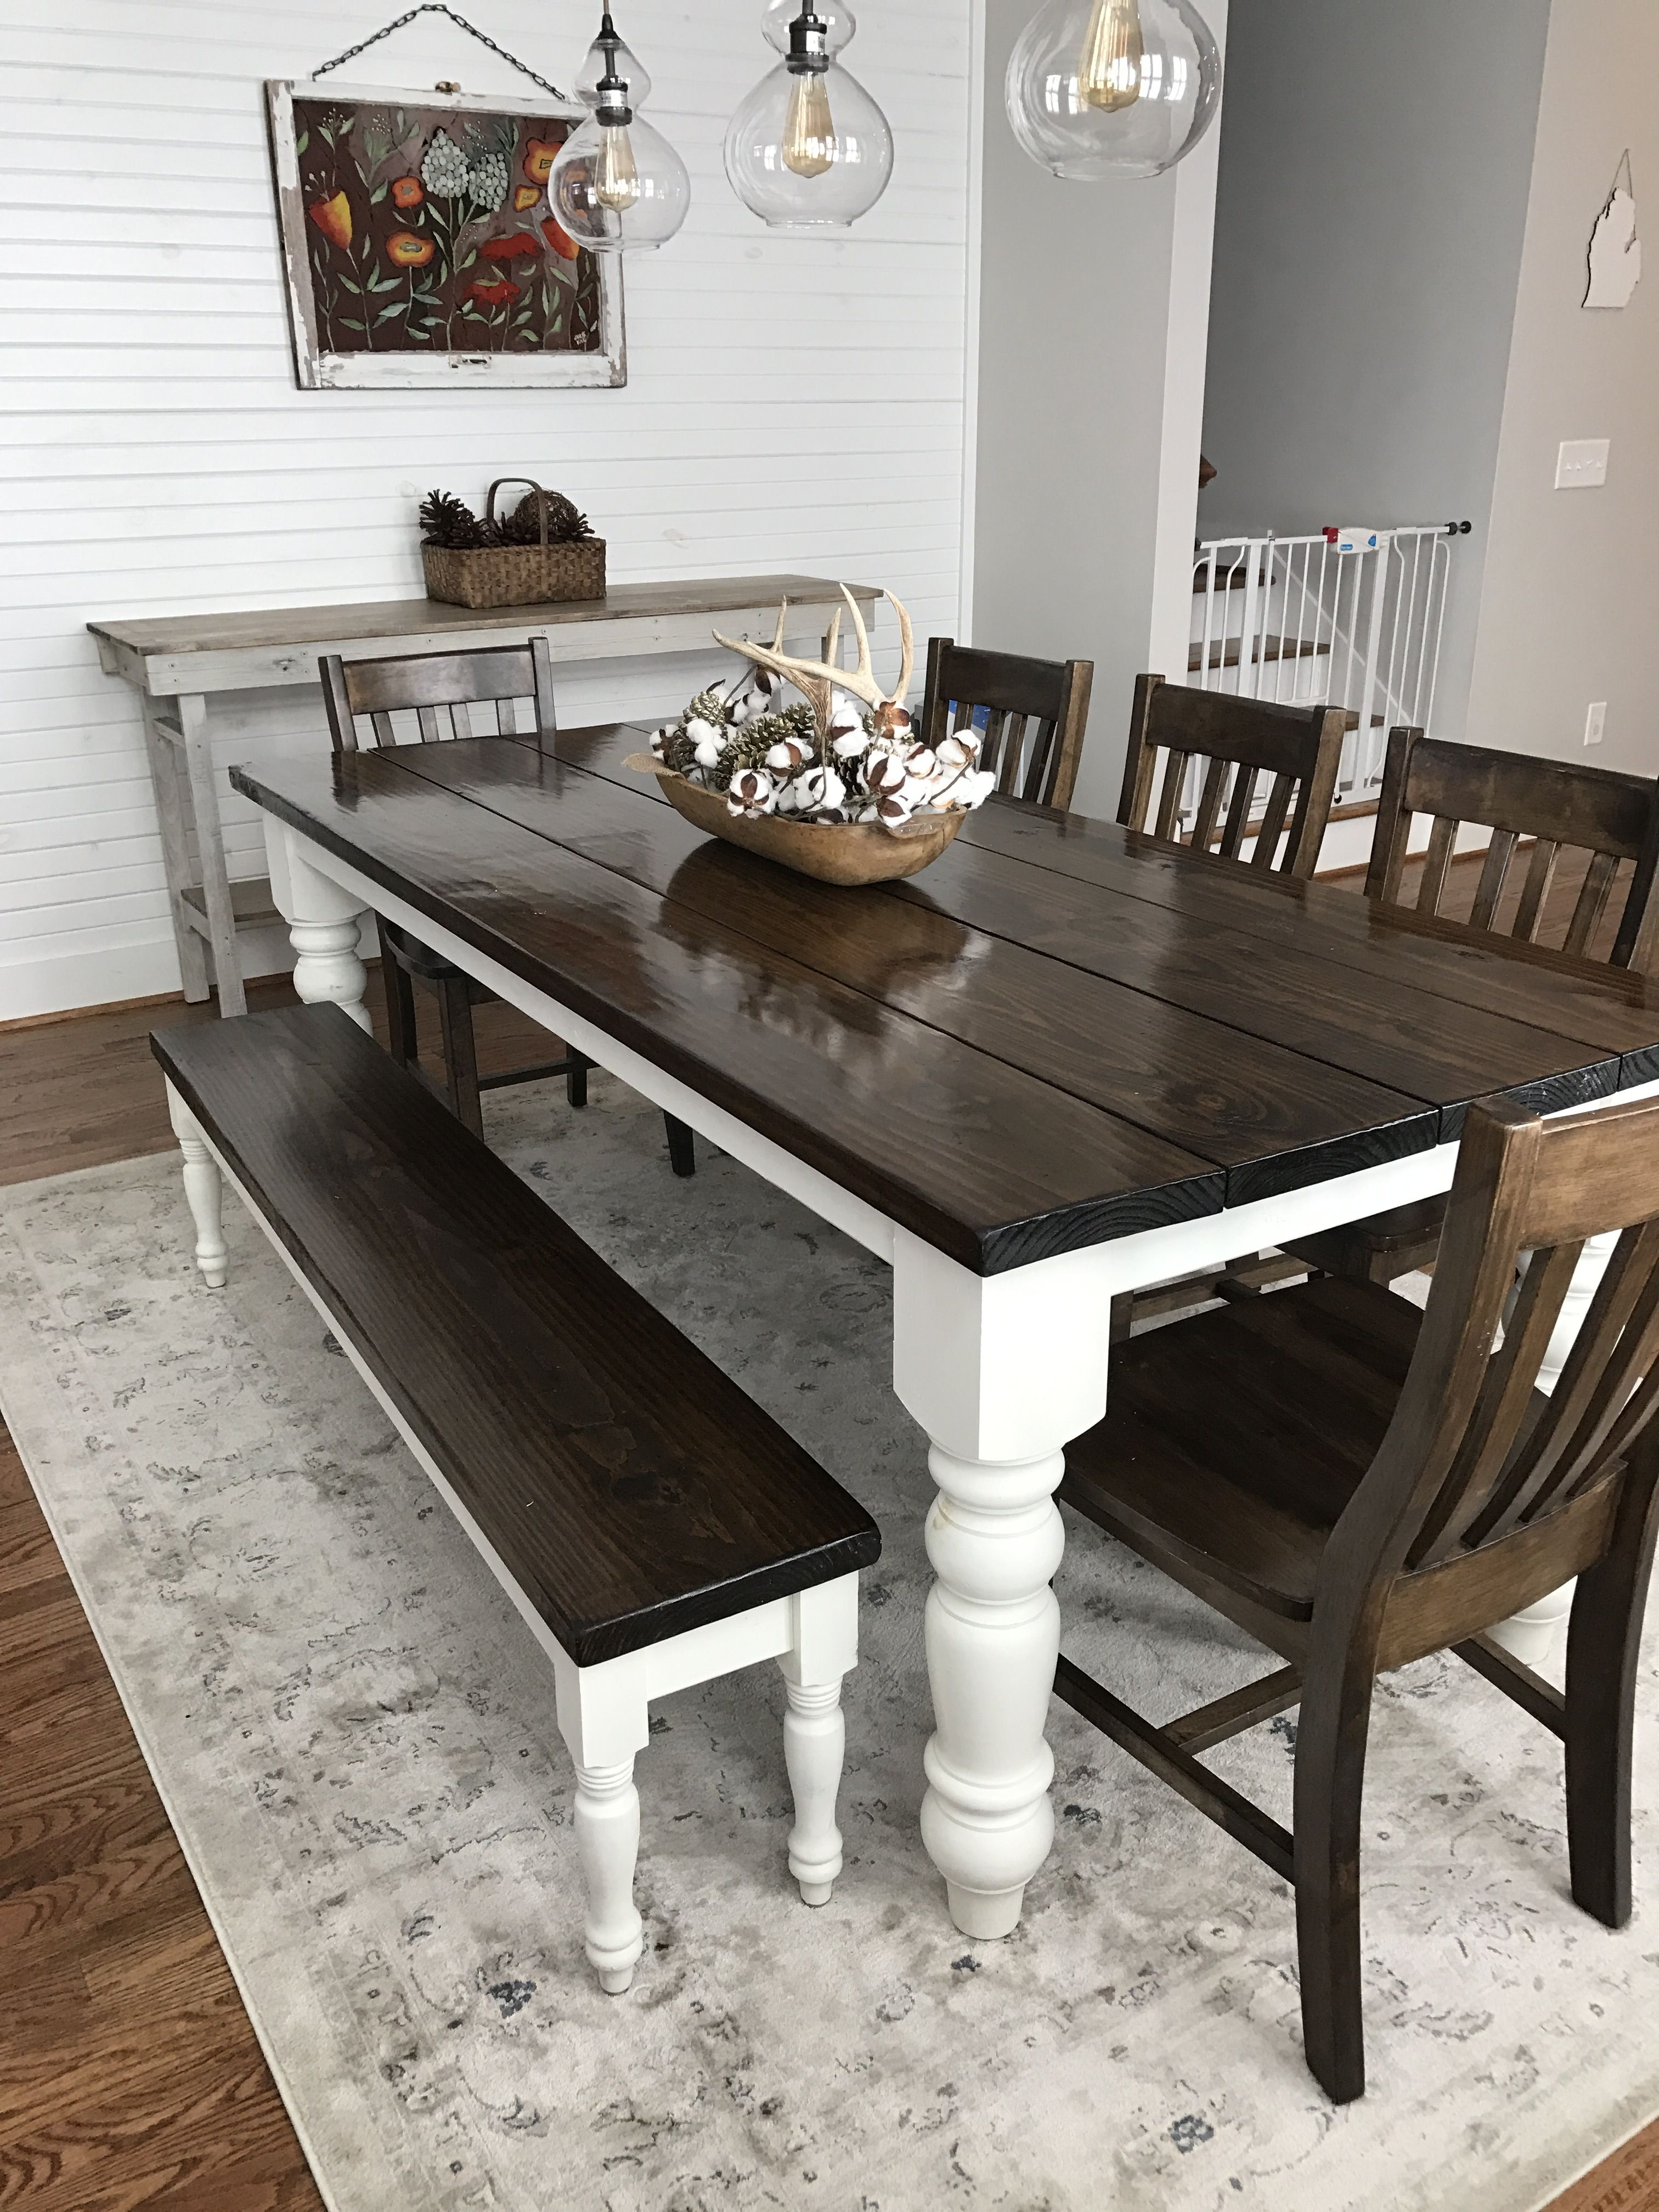 Farm Chairs Baluster Turned Leg Table In 2019 Decor Ideas